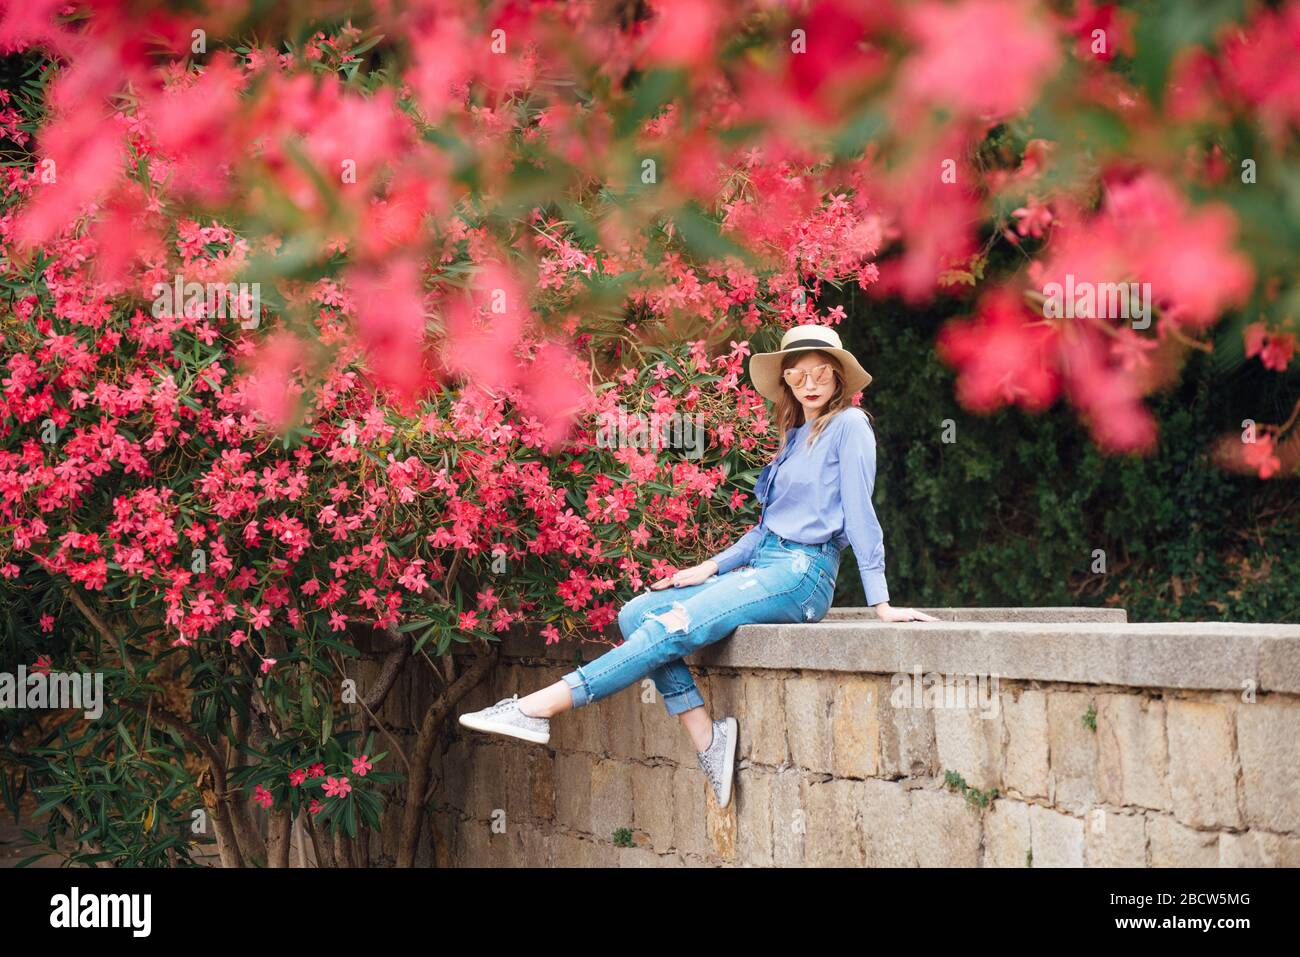 The girl next to the bushes with flowers in a hat and a stylish jacket. beautiful makeup Stock Photo